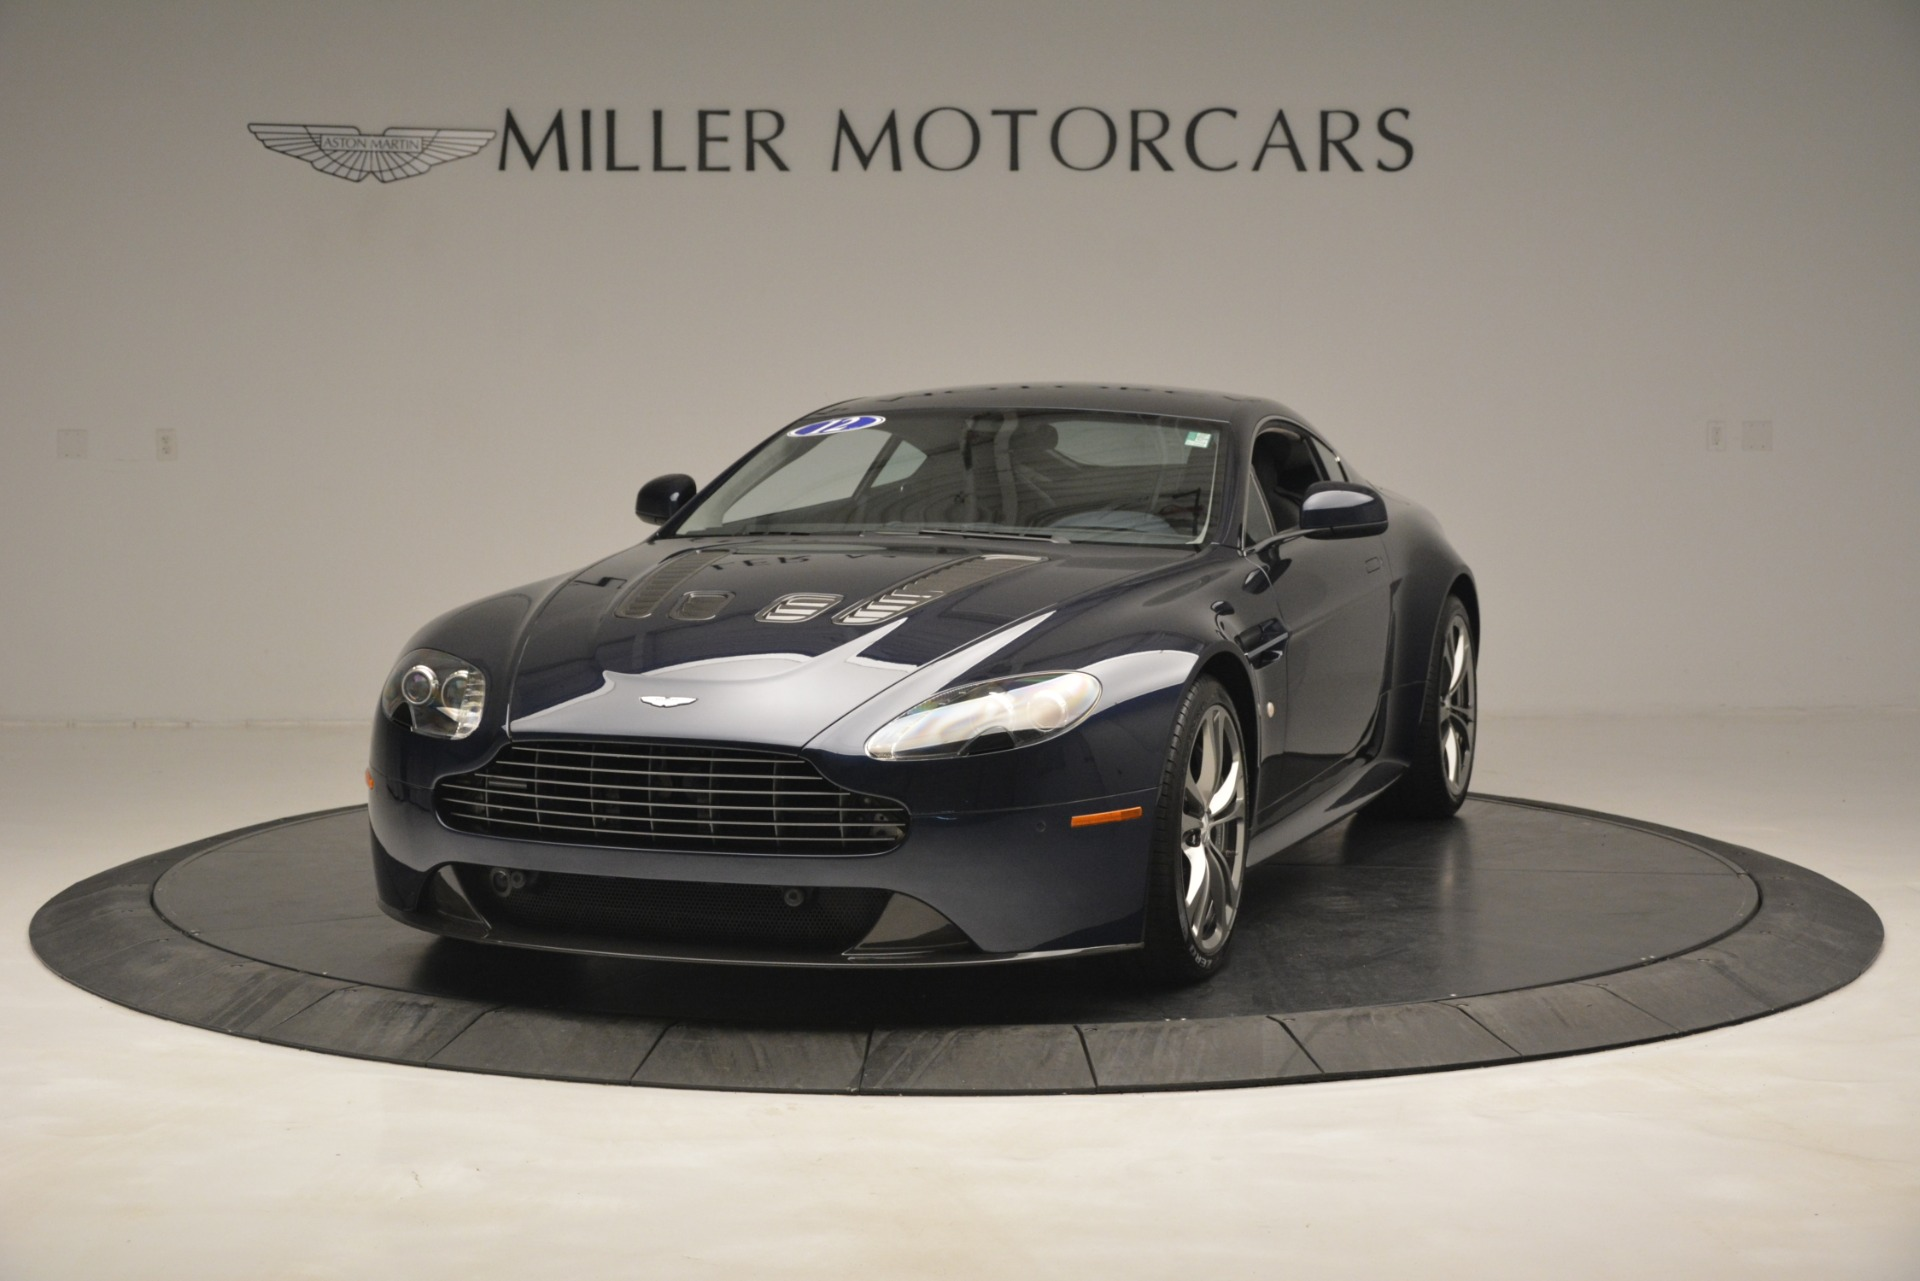 Used 2012 Aston Martin V12 Vantage for sale Sold at Alfa Romeo of Greenwich in Greenwich CT 06830 1